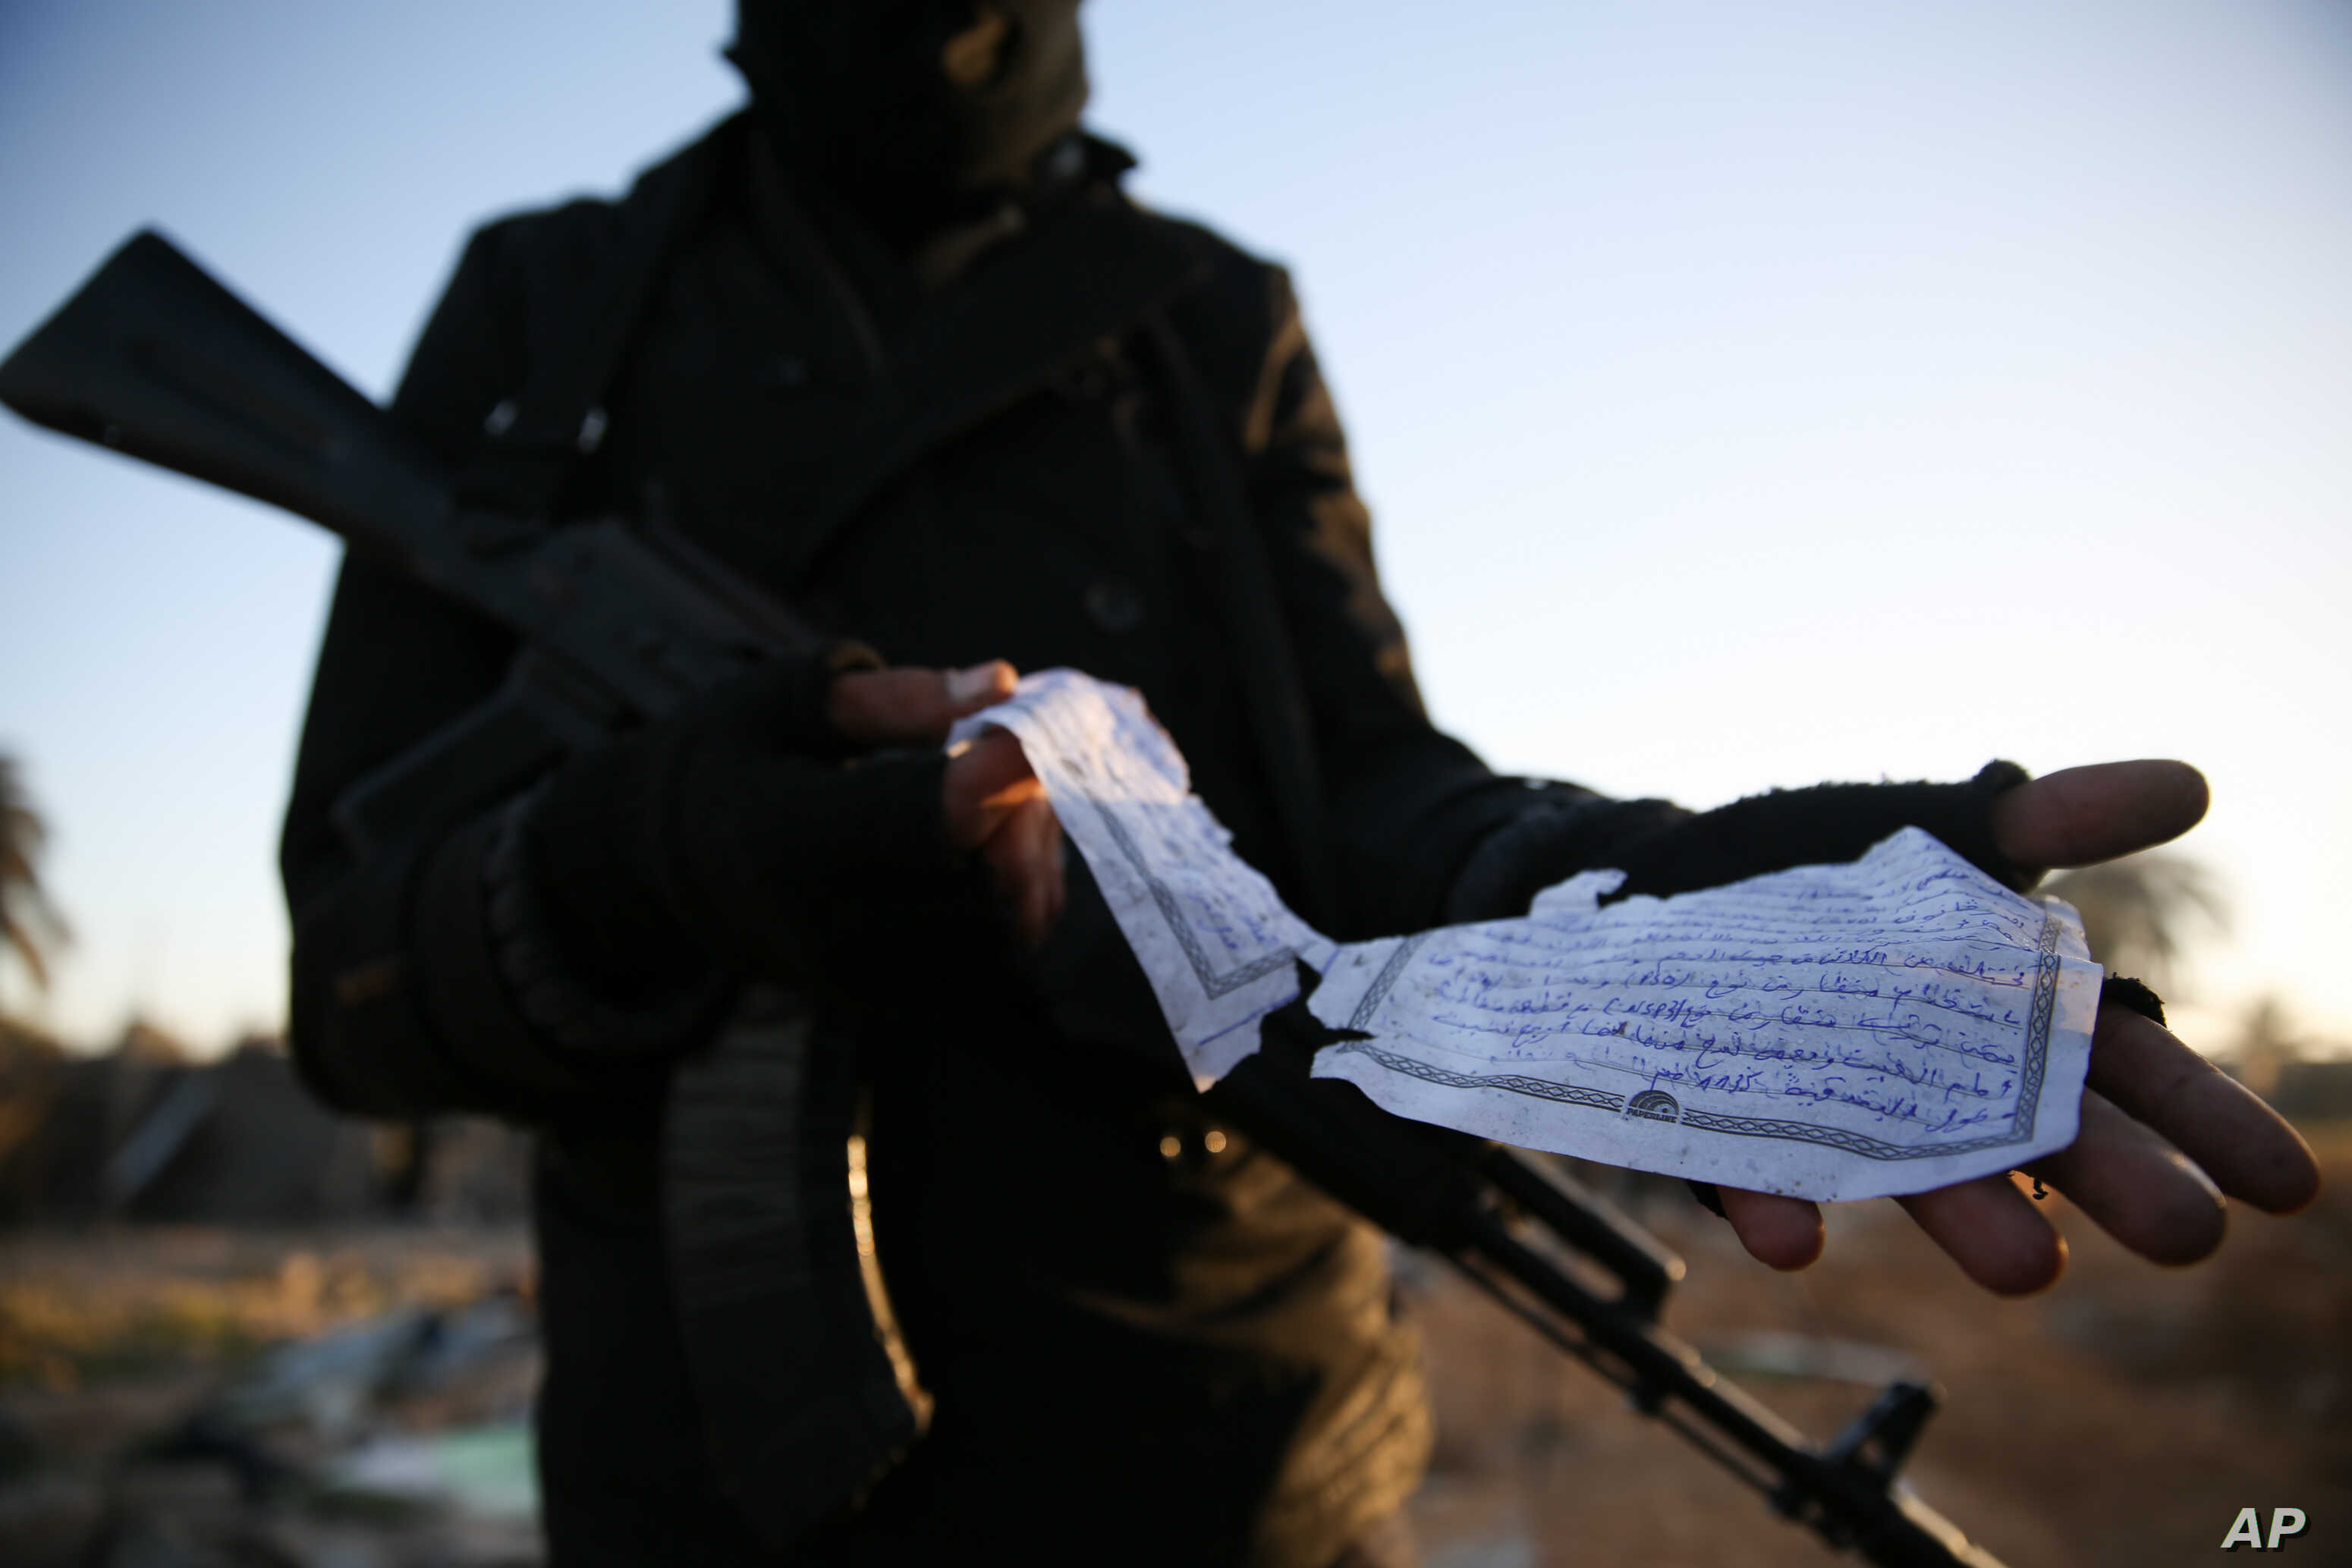 A member of the Libyan security forces displays part of a document in Arabic describing weaponry that was found at the site of U.S. airstrikes on an Islamic State camp near the western city of Sabratha, Libya, Feb. 20, 2016.